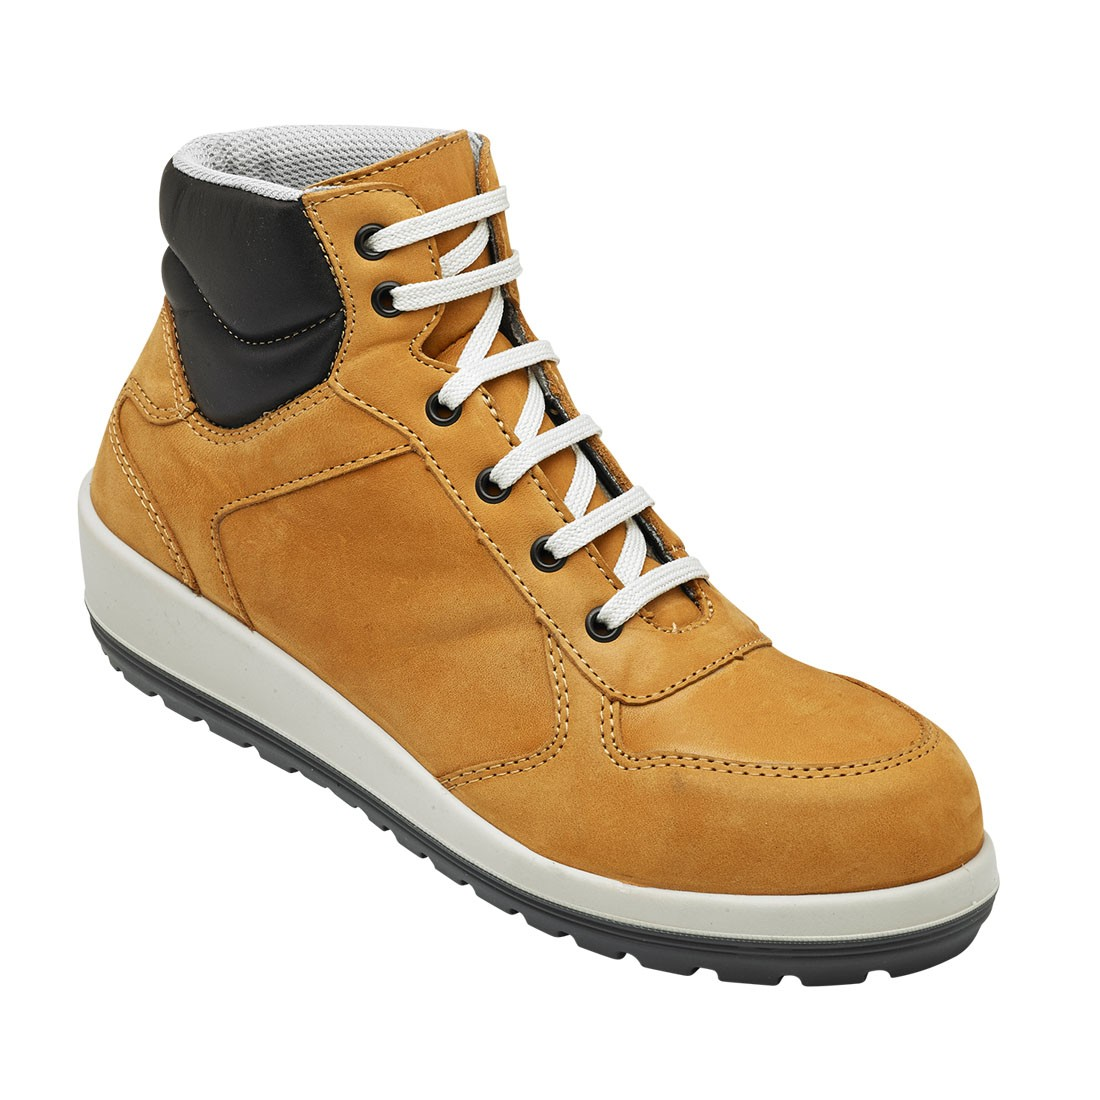 Parade Footwear Ladies Brazza Honey S3 Lightweight Womens Safety Boots